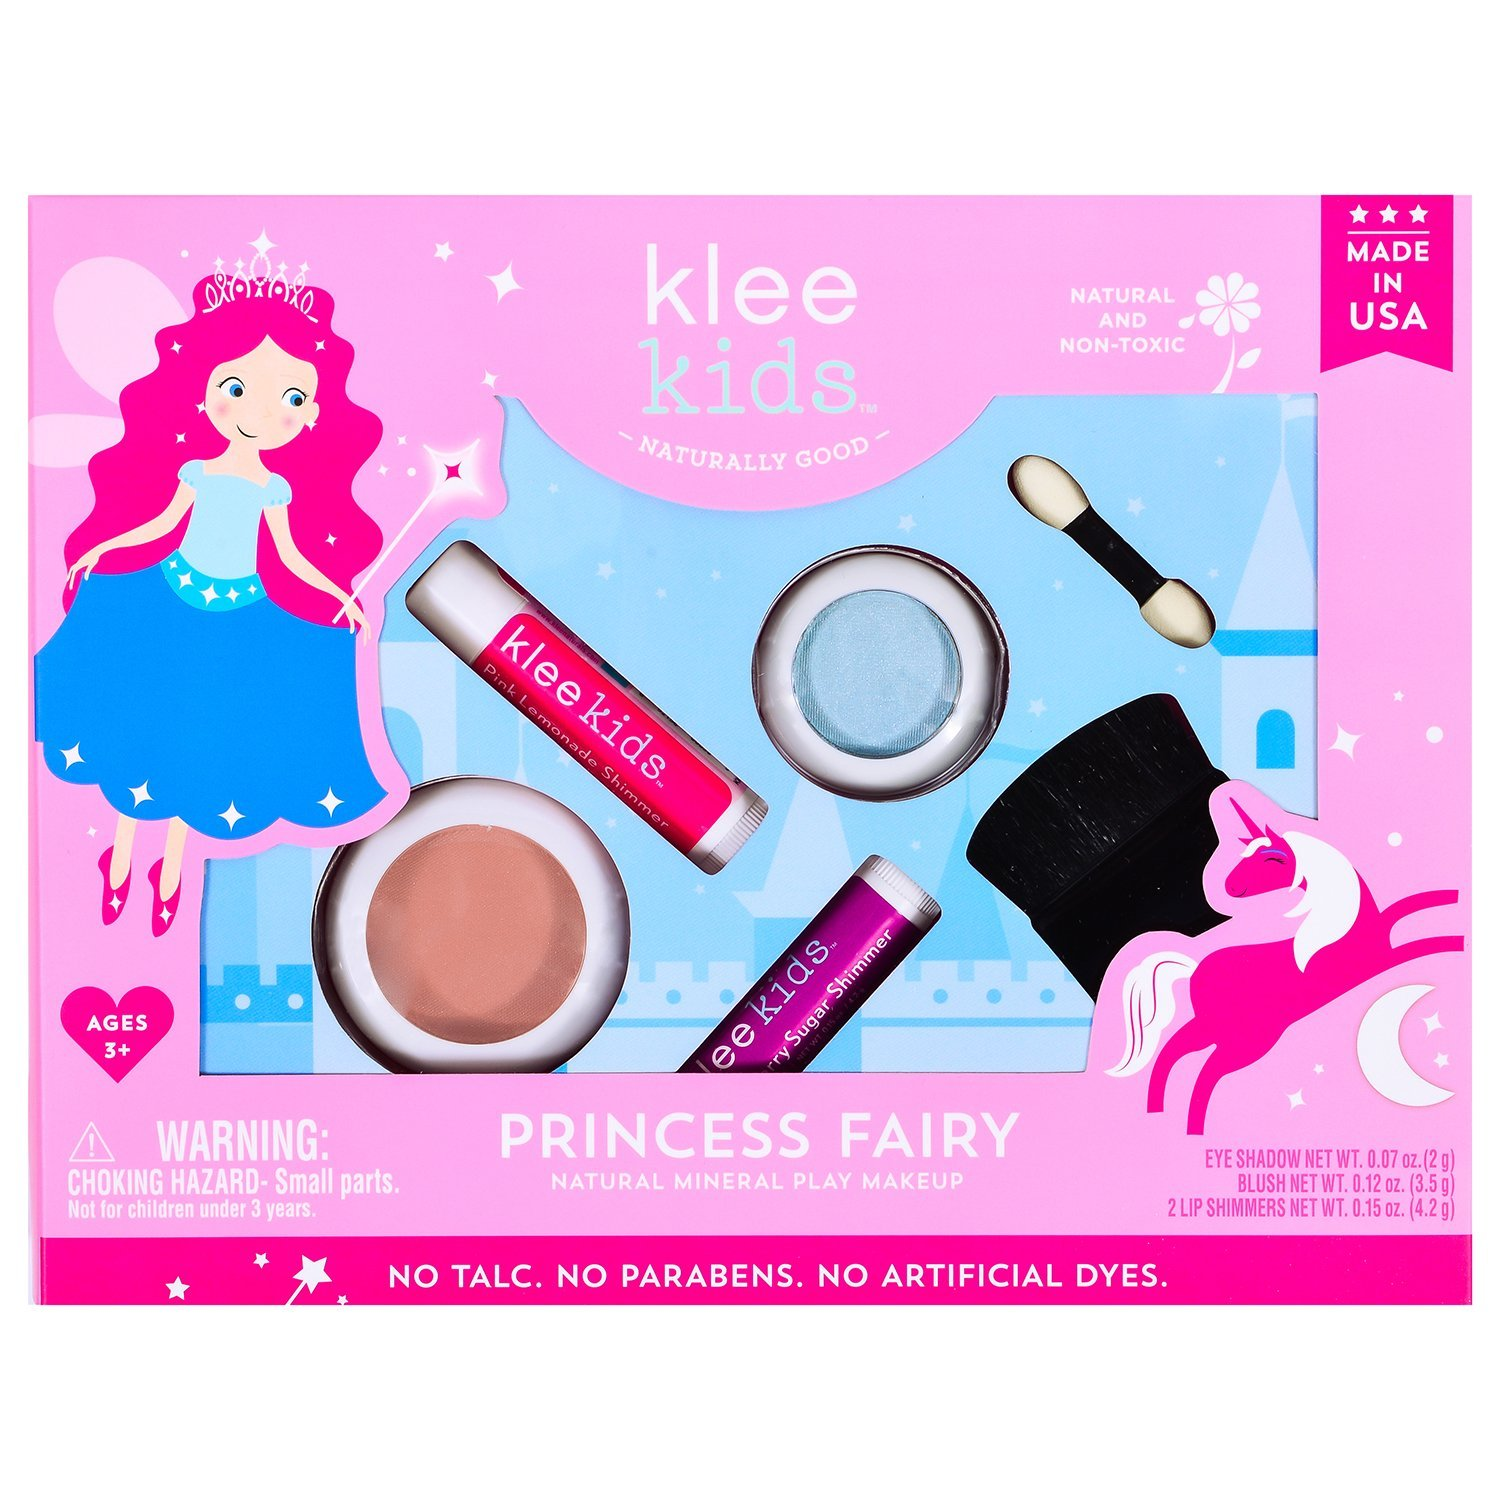 Princess Fairy - Klee Kids Natural Mineral Makeup 4 Piece Kit with Pressed Powder Compacts. Non-Toxic. Made in USA.